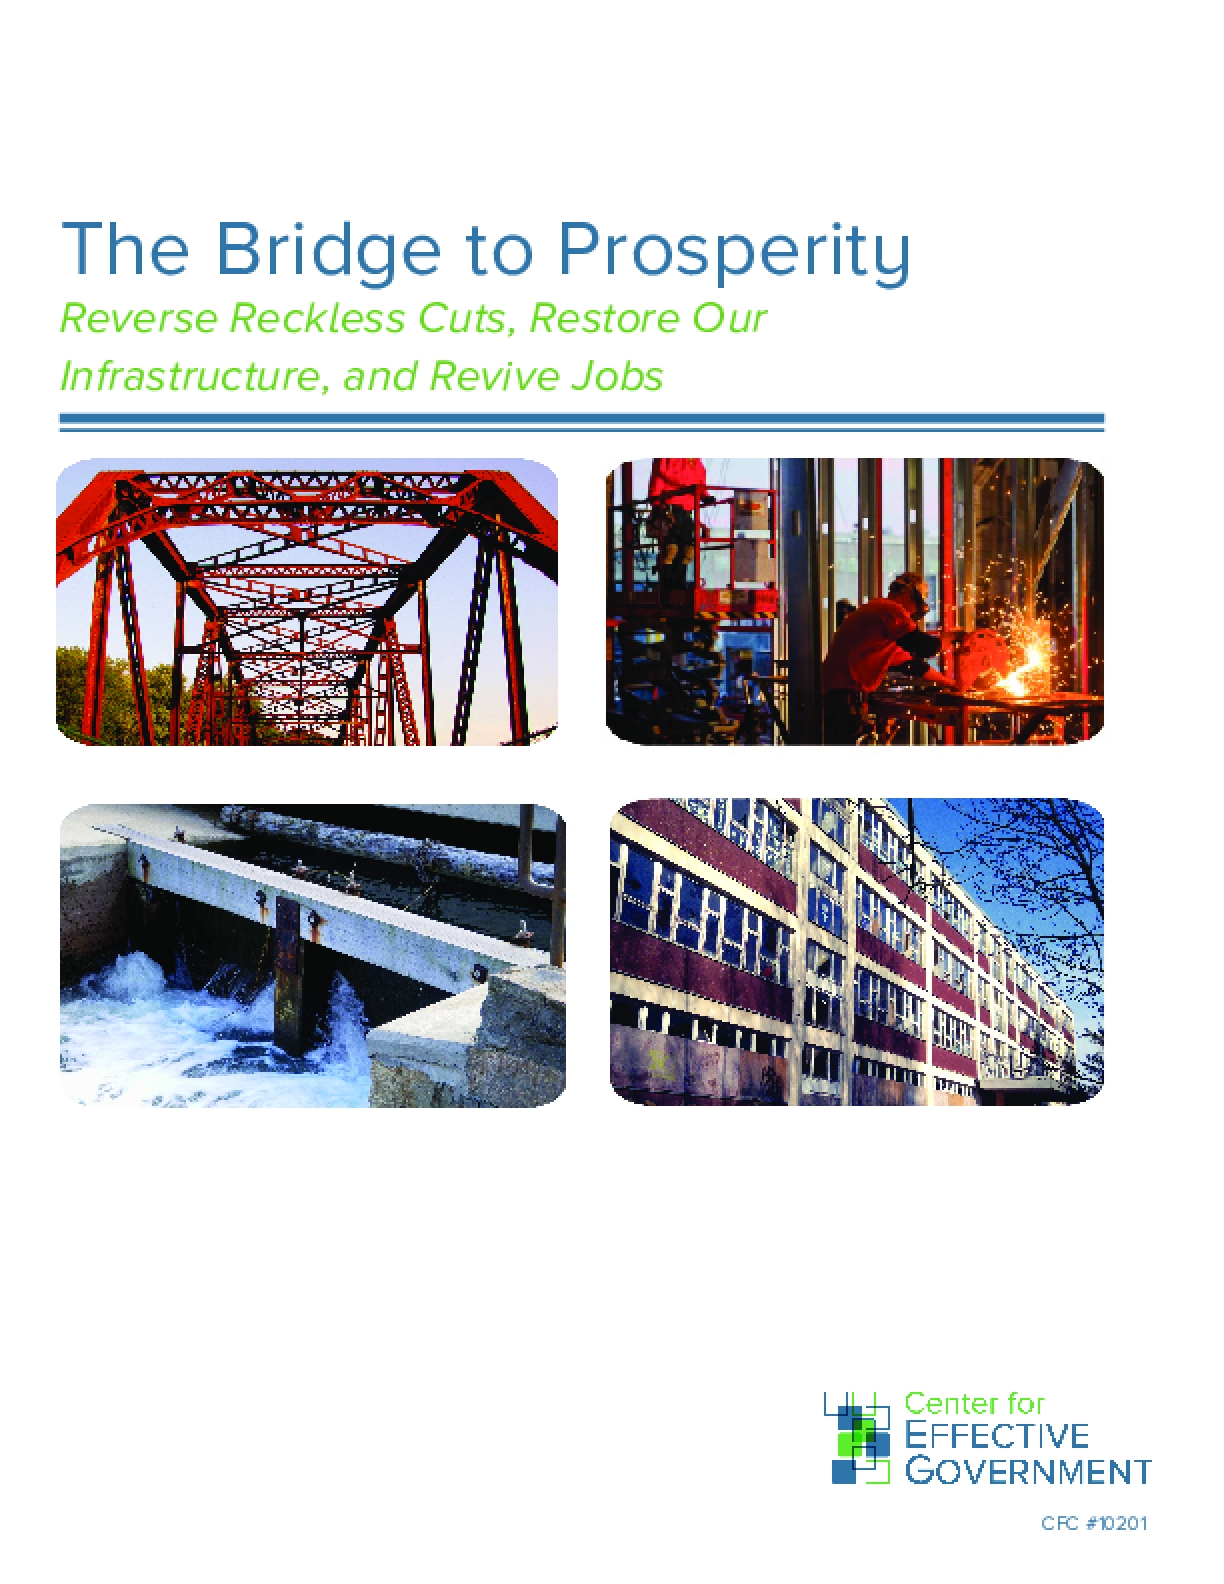 The Bridge to Prosperity: Reverse Reckless Cuts, Restore Our Infrastructure, and Revive Jobs